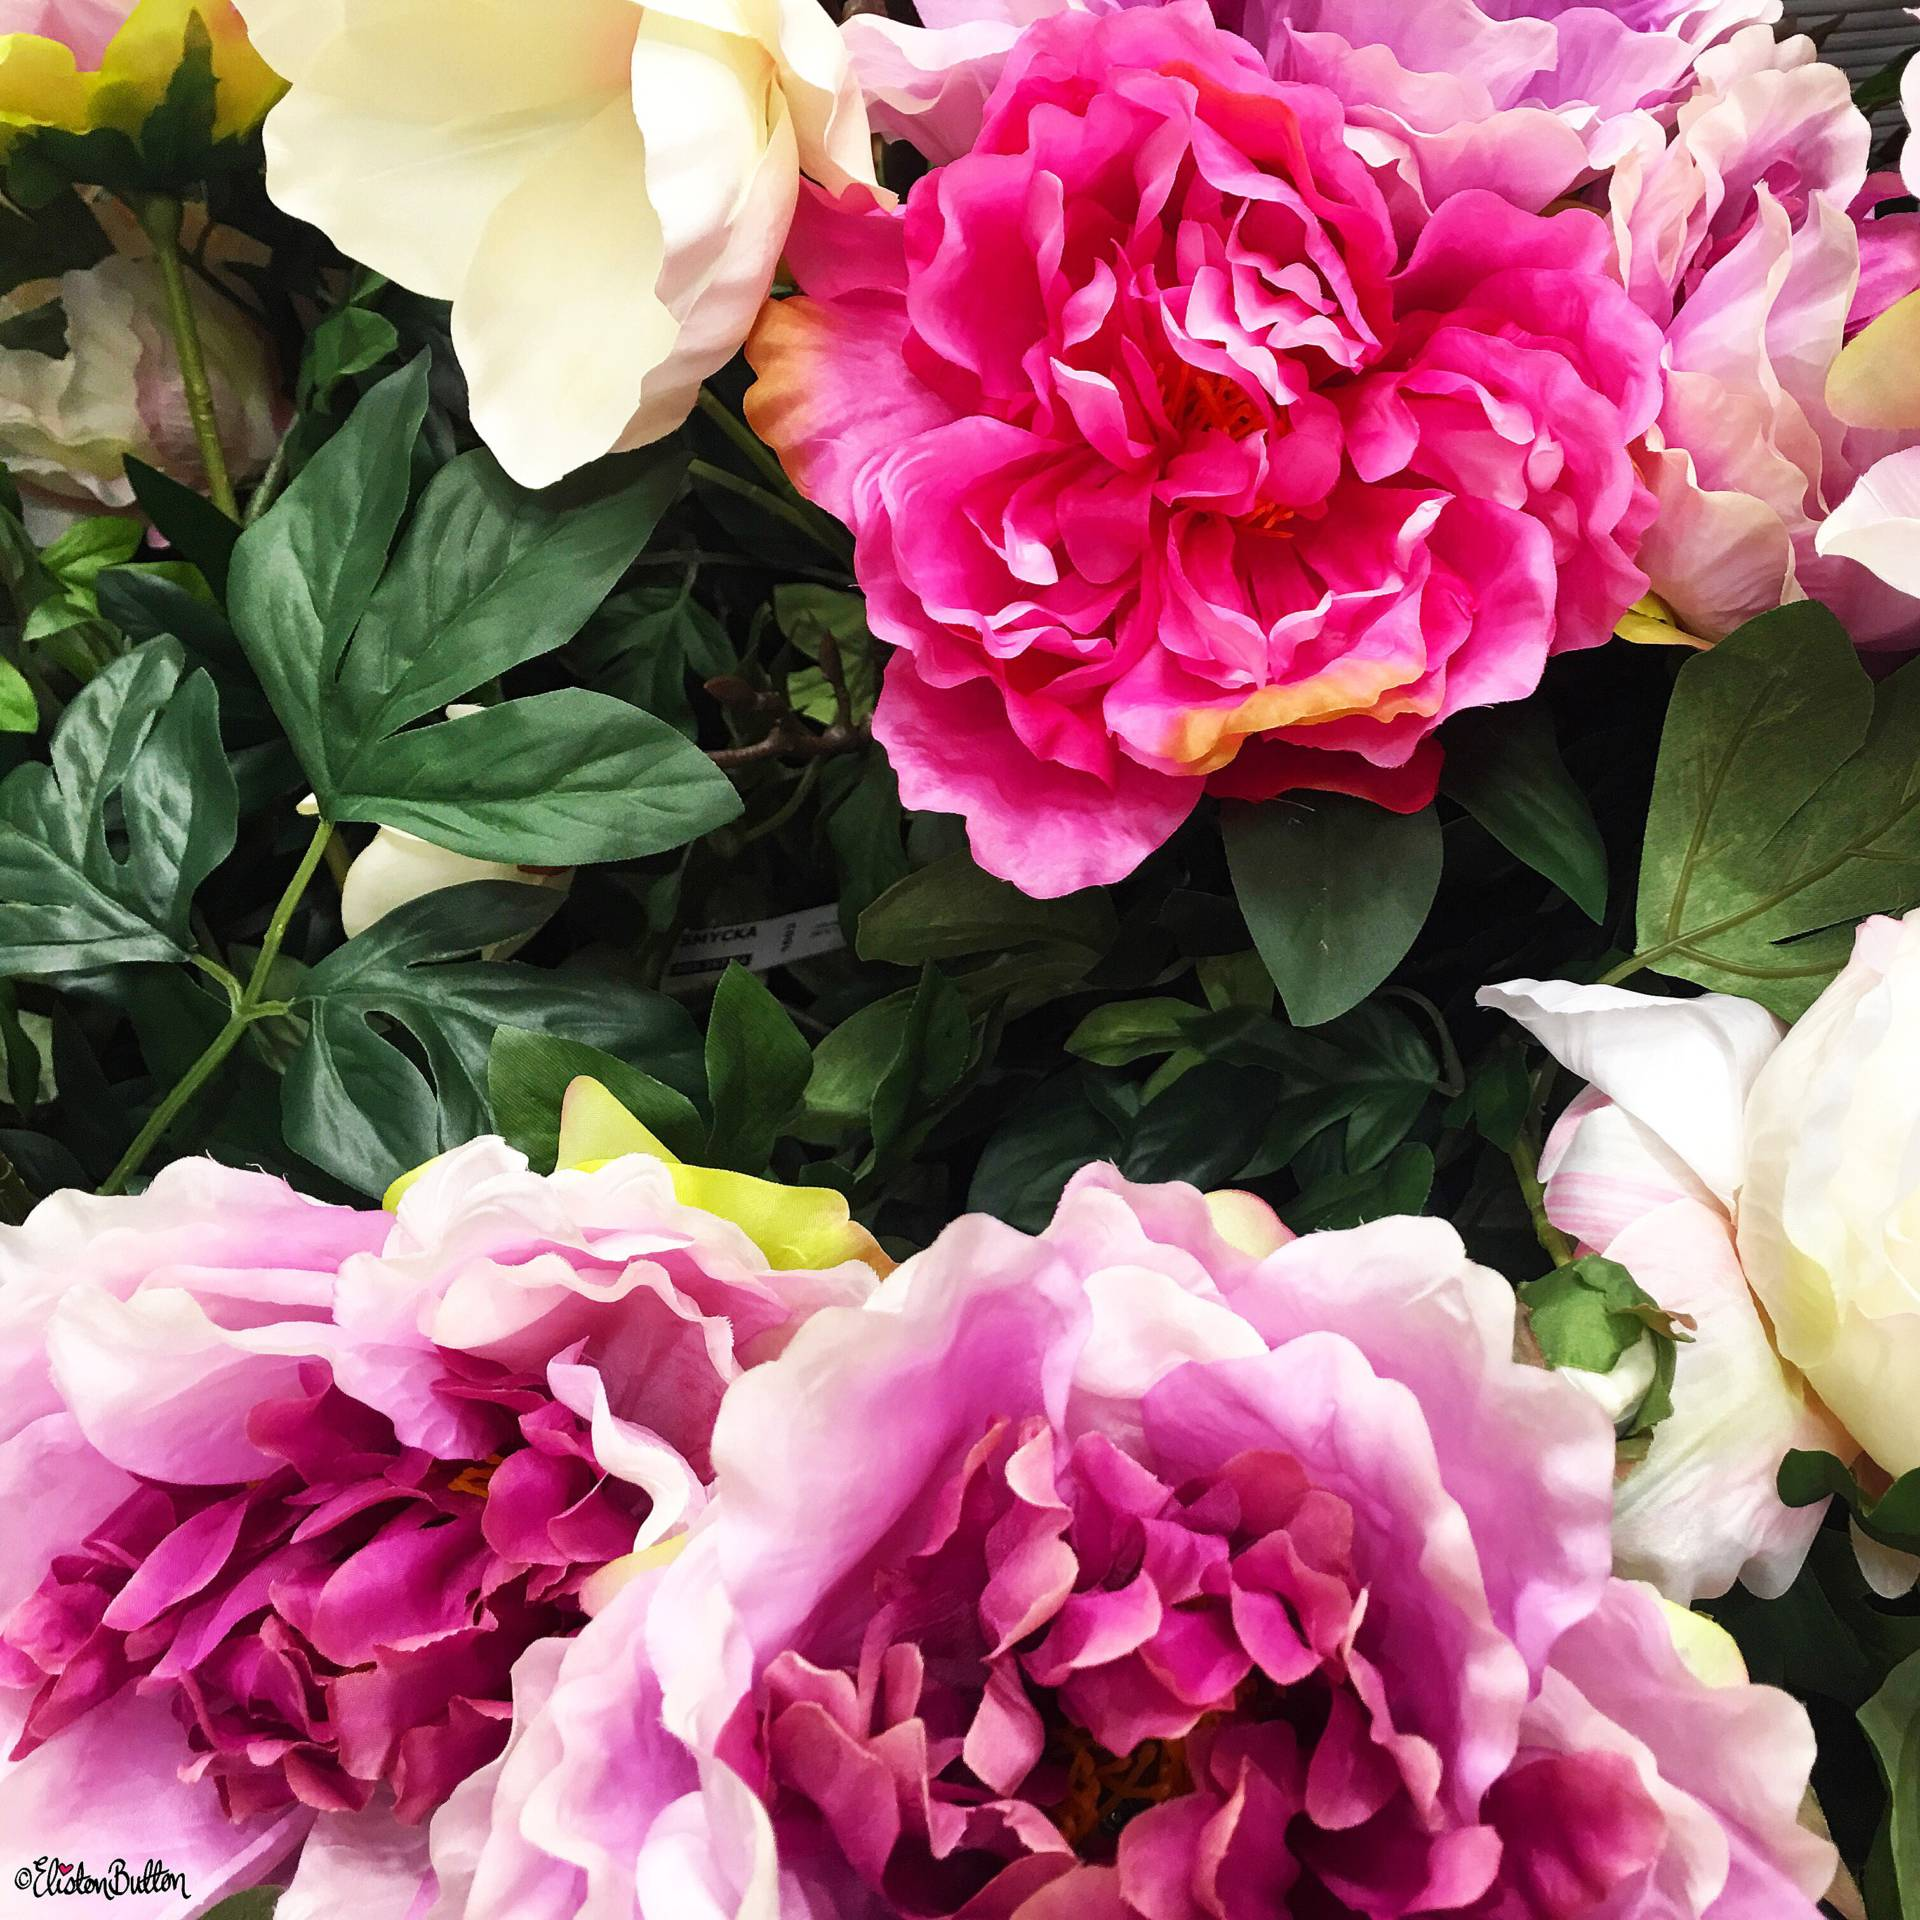 Faux Pink Peony Flowers from IKEA - Around Here…August 2016 at www.elistonbutton.com - Eliston Button - That Crafty Kid – Art, Design, Craft & Adventure.